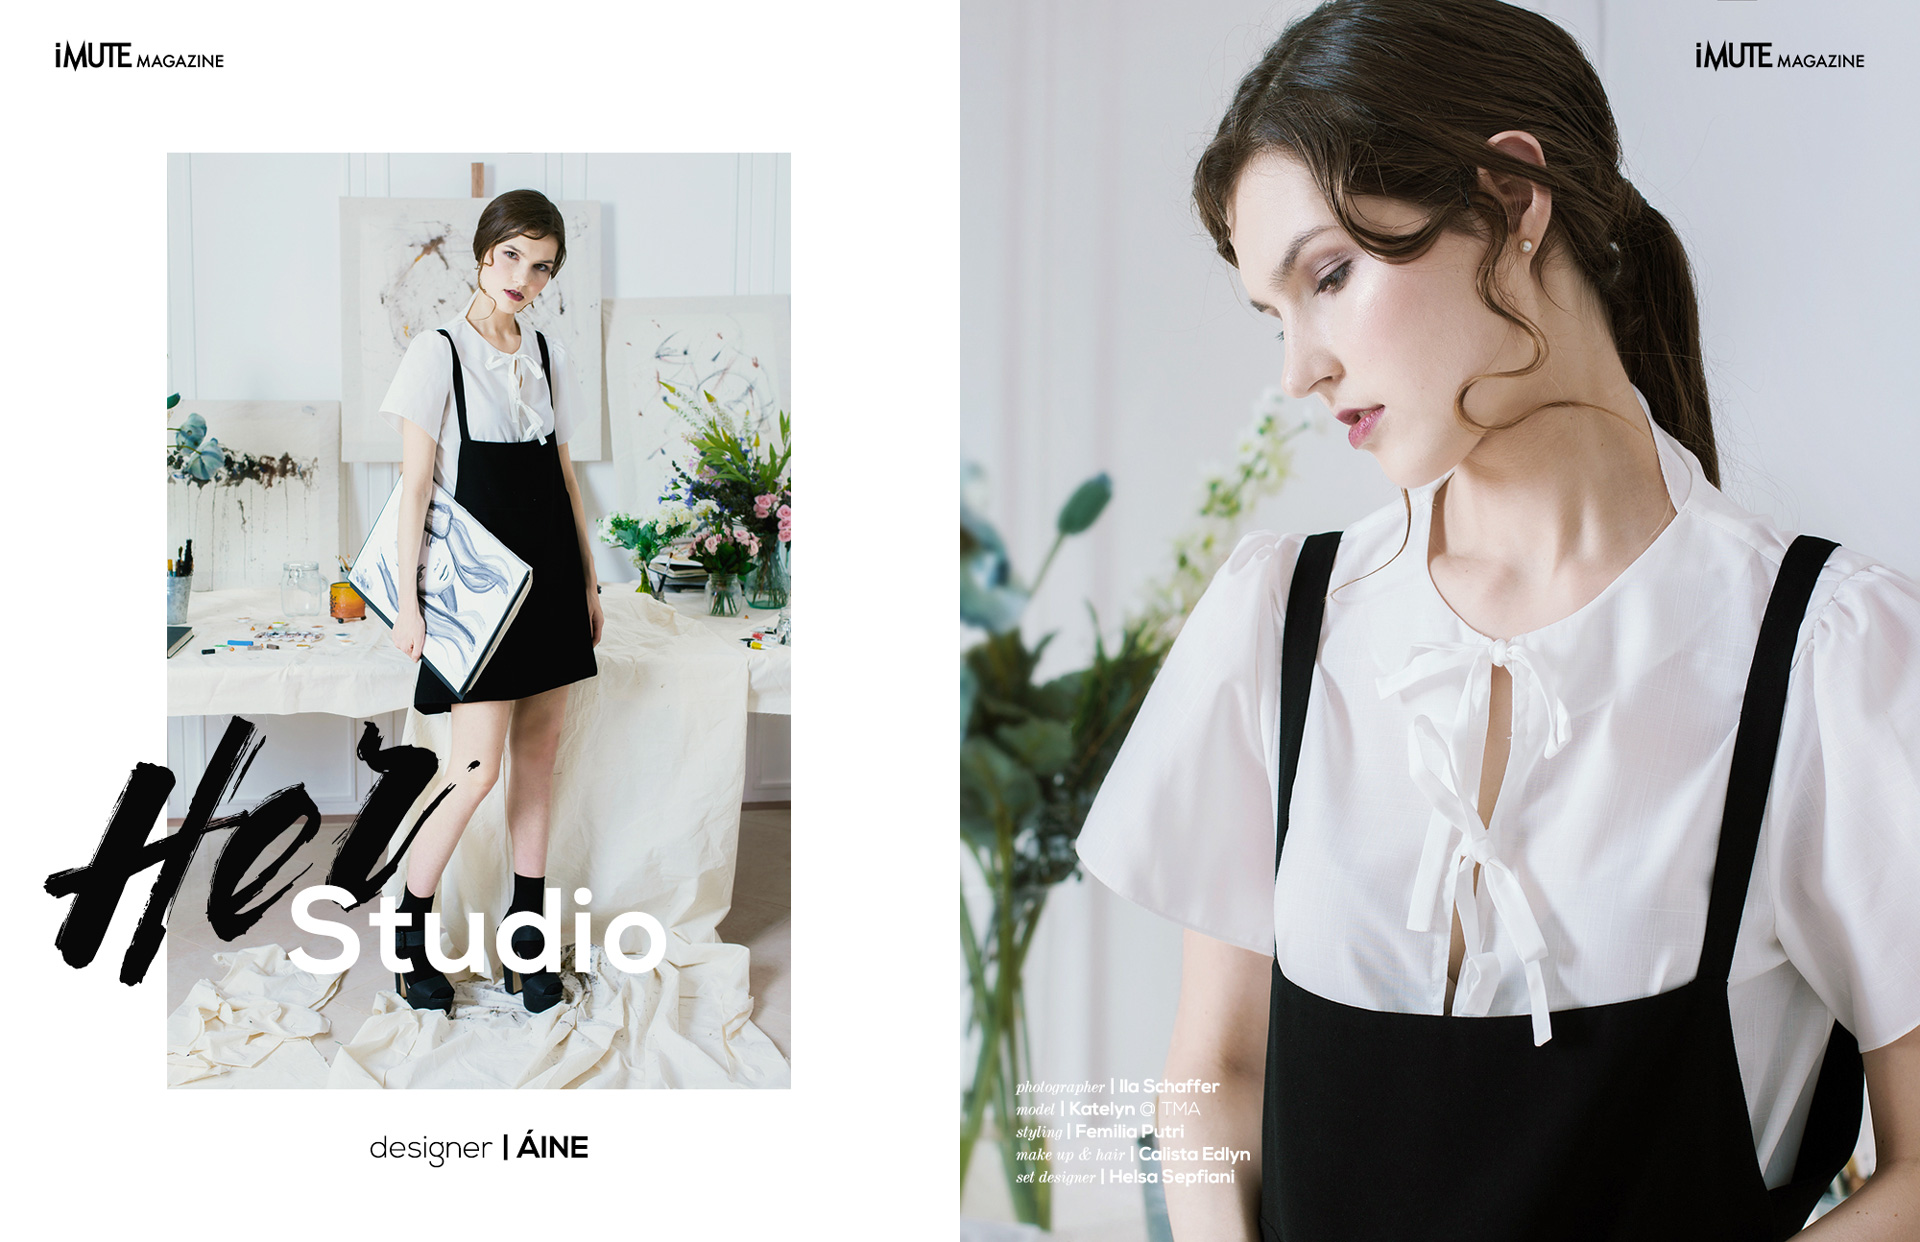 Her Studio advertorial for iMute Magazine Designer | ÁINE Photographer | Ila Schaffer Model | Katelyn @ TMA Stylist | Femilia Putri Make up & Hair | Calista Edlyn Set Designer | Helsa Sepfiani